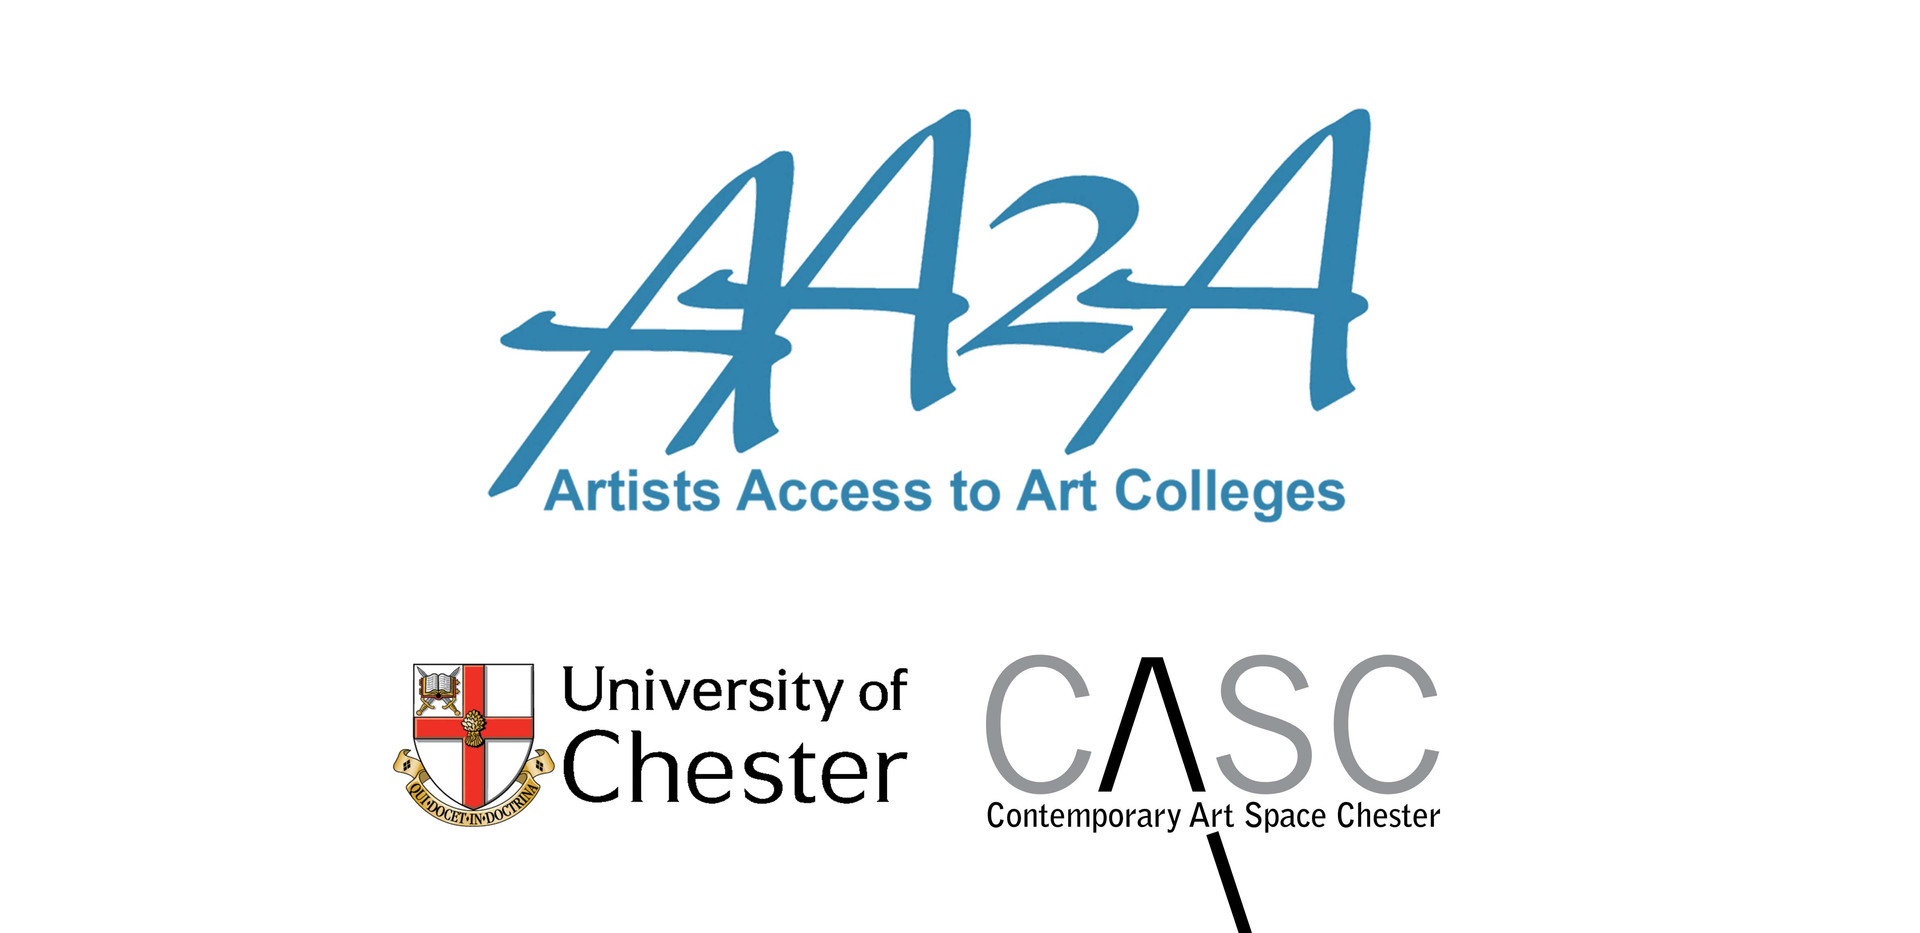 AA2A - CASC - UNI OF CHESTER